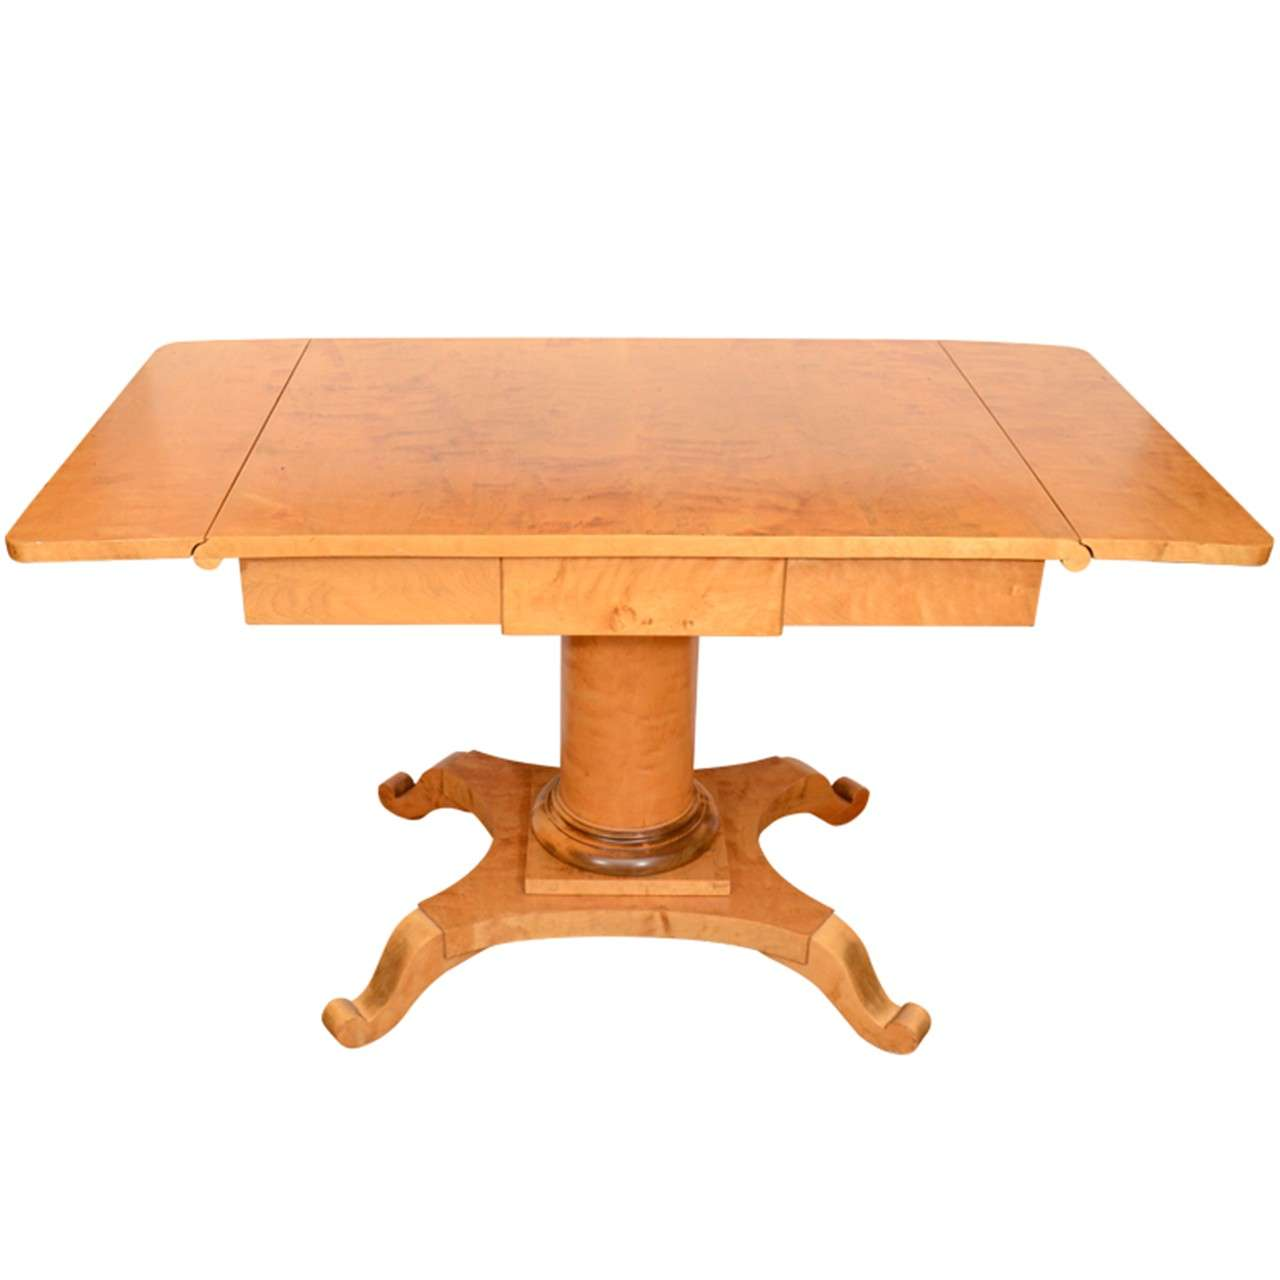 Biedermeier Salon Table